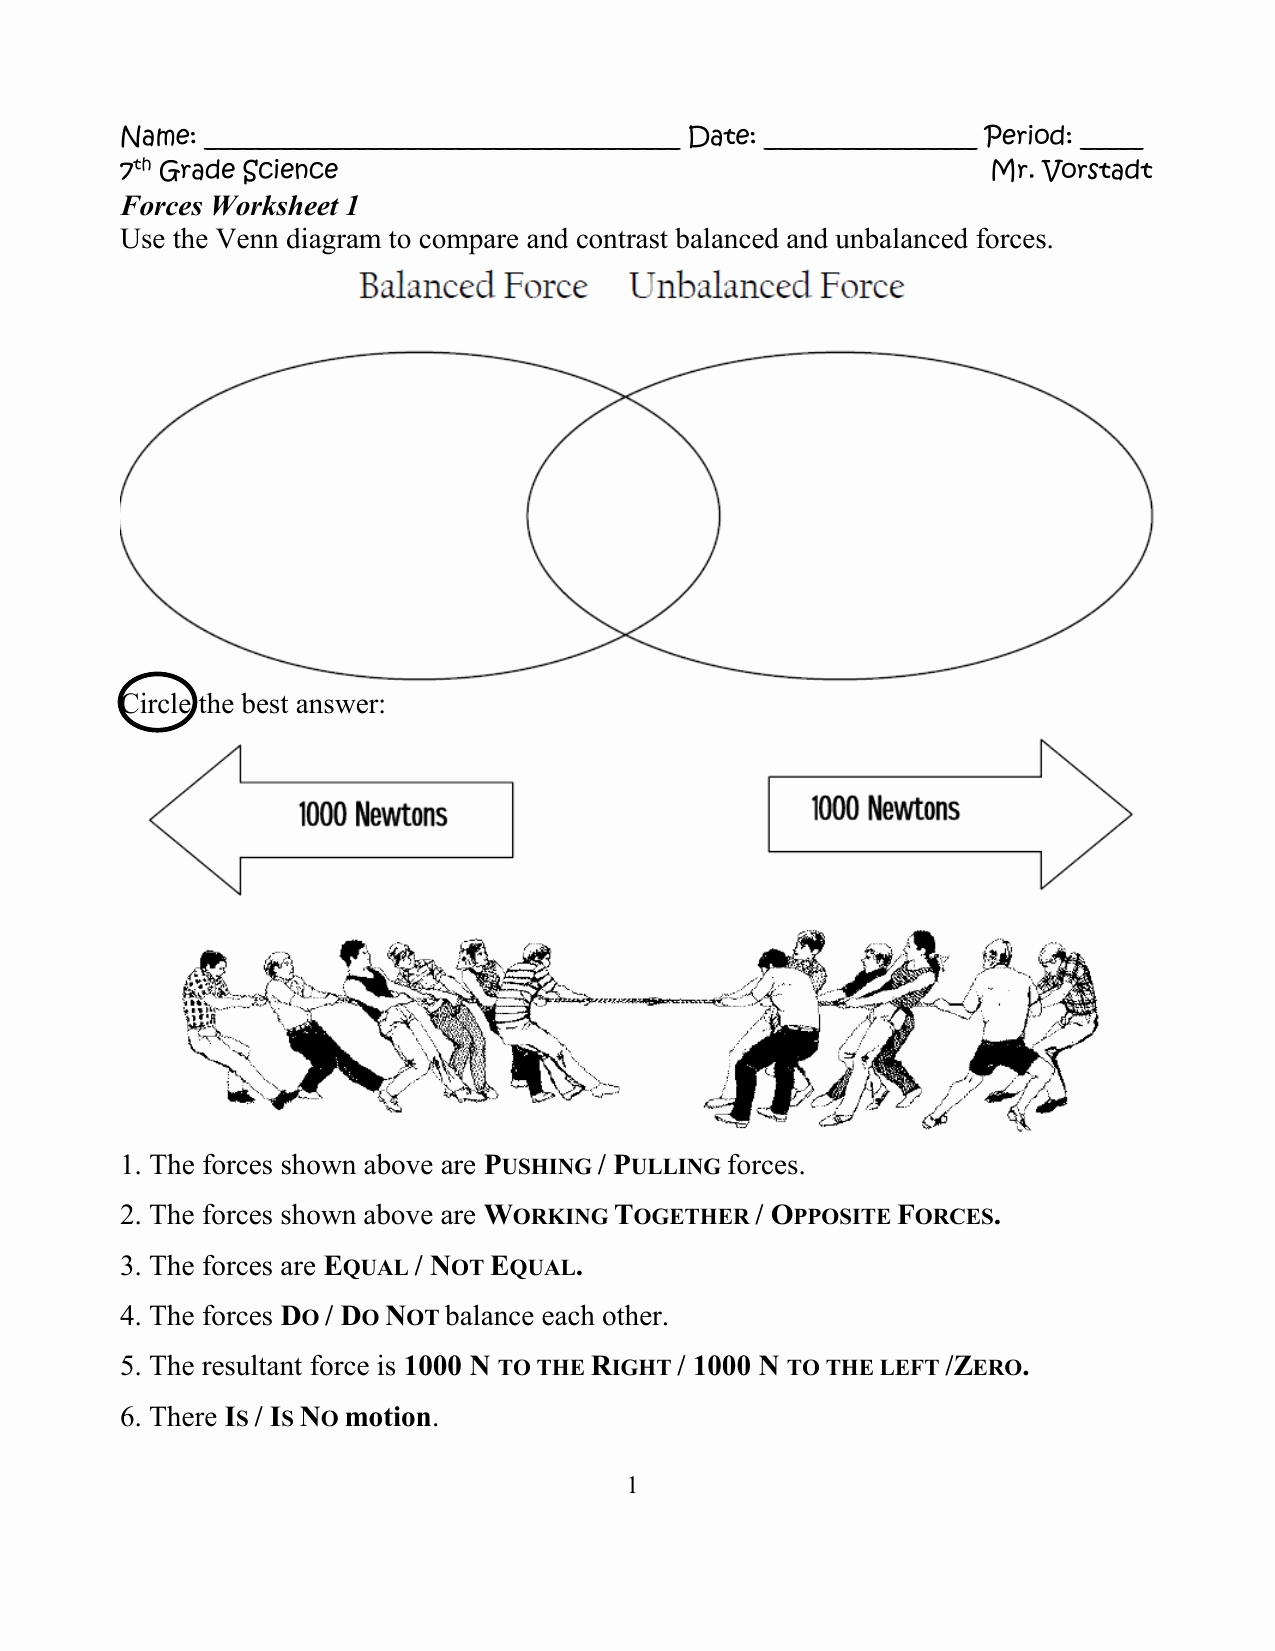 Forces Worksheet 1 Answer Key New Balanced Unbalanced forces Worksheet the Best Worksheets